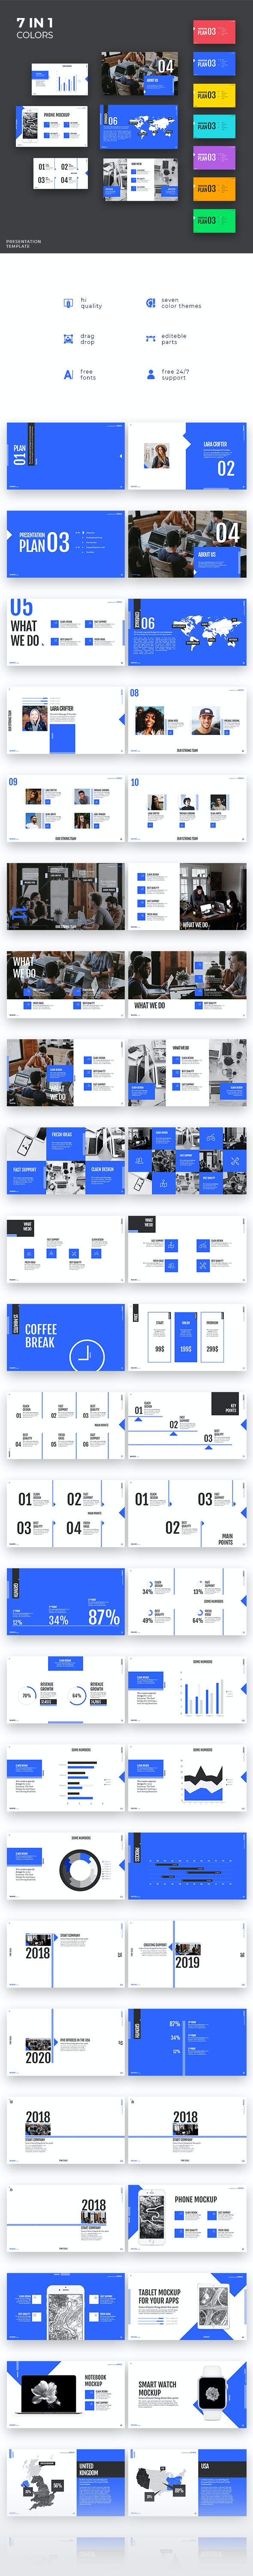 7 in 1 - My Project Pro - Keynote Template - Business Keynote Templates